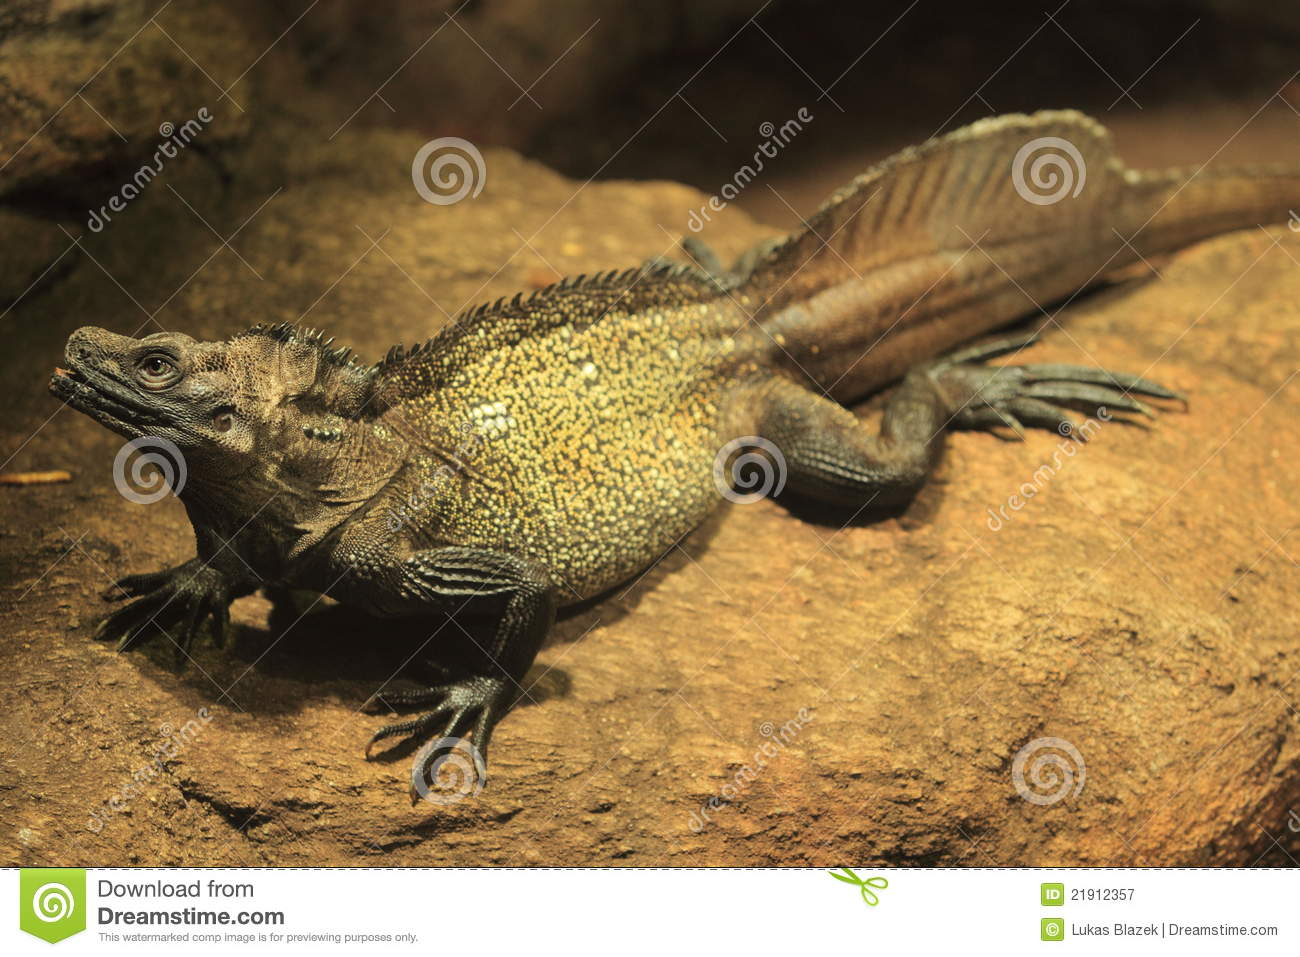 Sailfin Lizard clipart #16, Download drawings